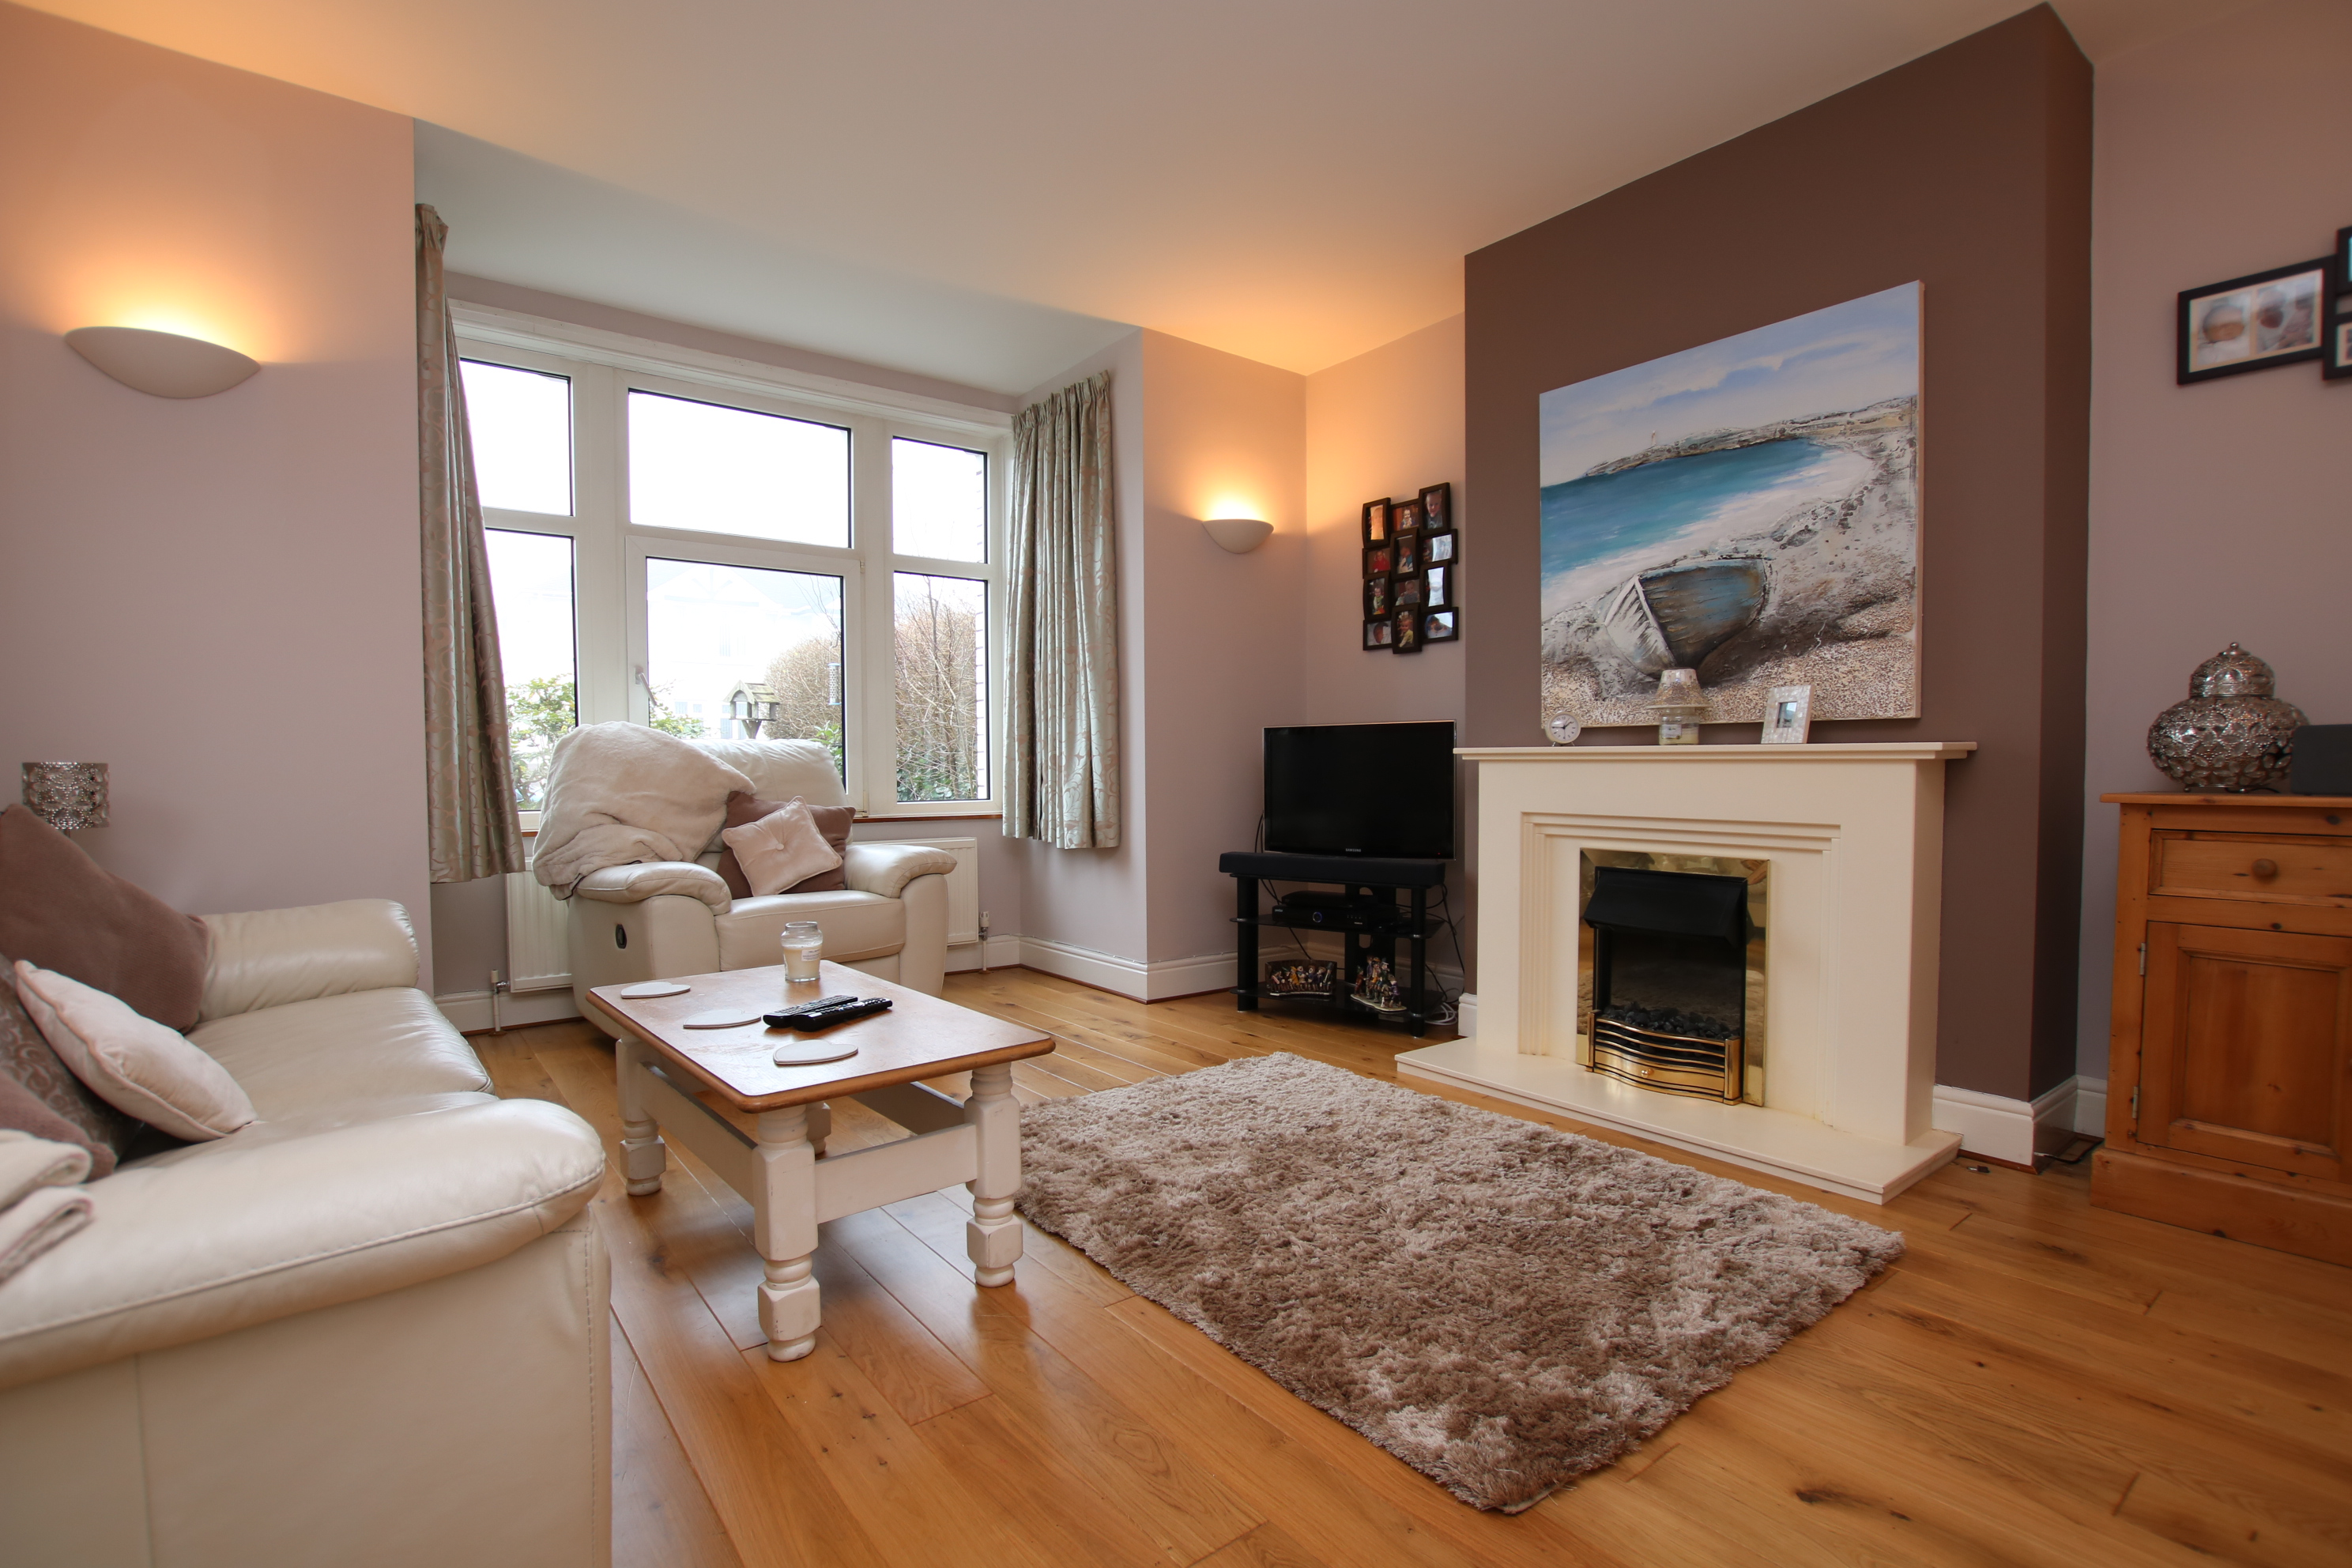 Sweetbrier lane heavitree 3 bedroom semi detached house for 1930 living room ideas